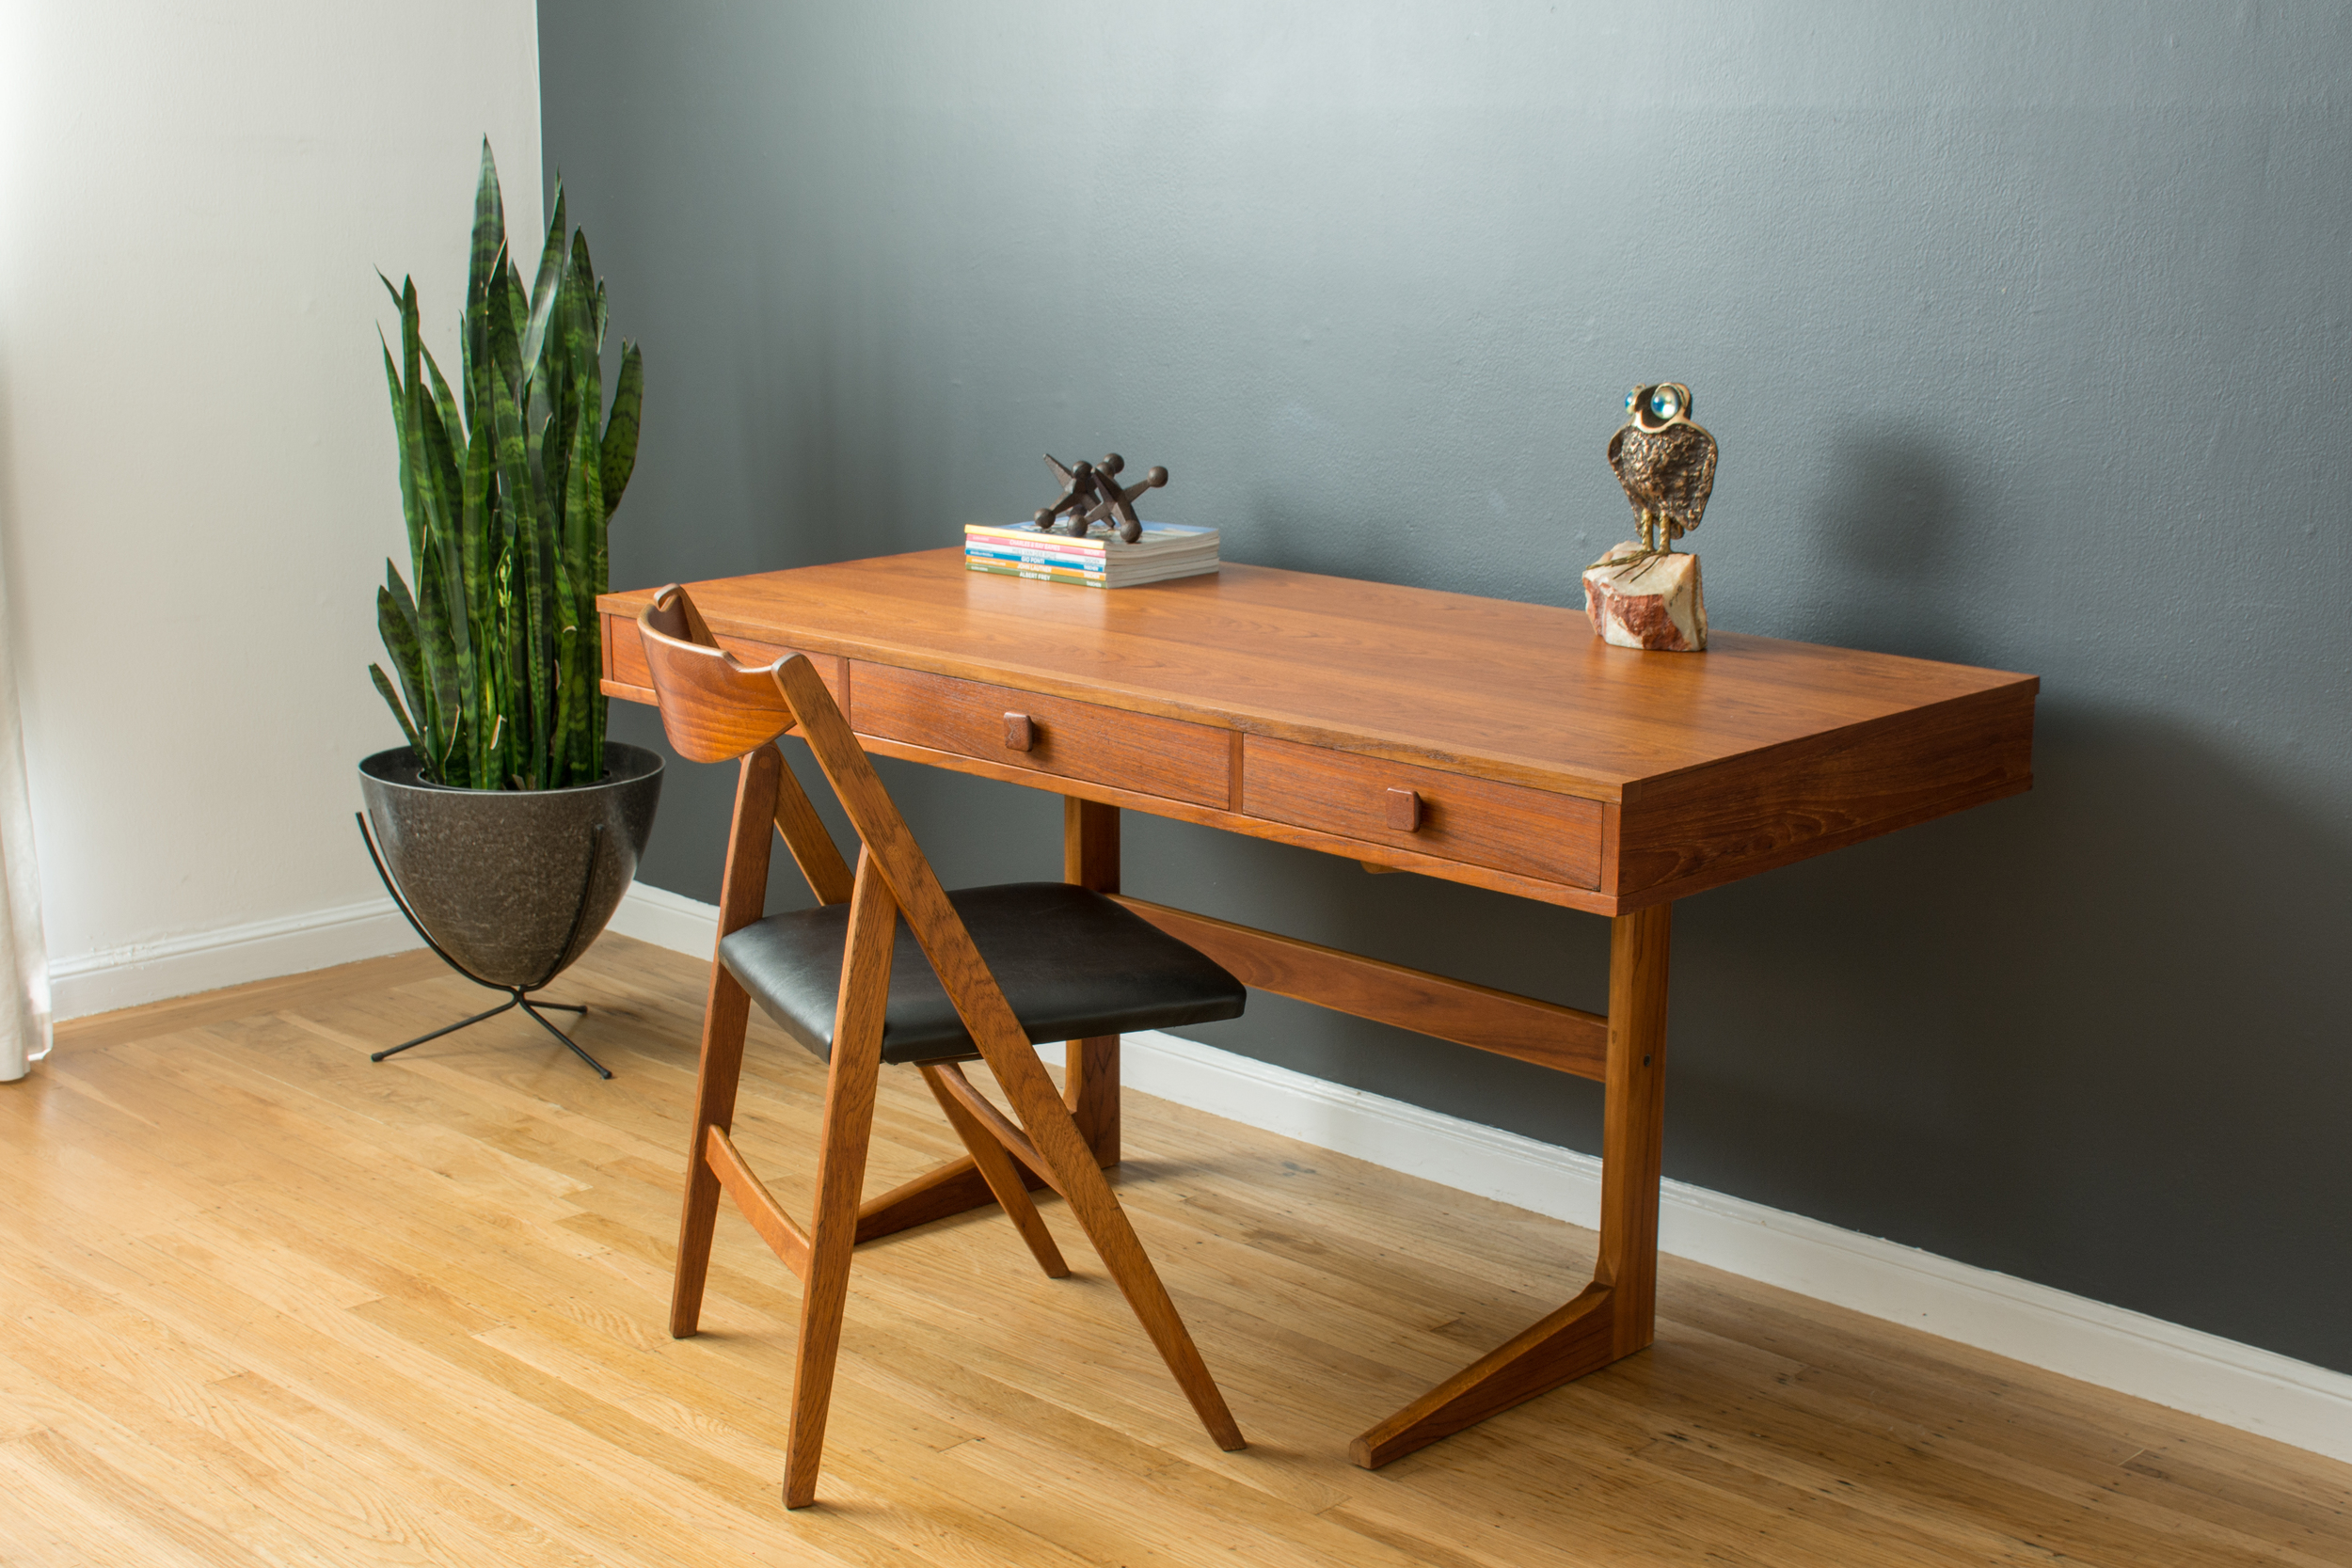 Danish Modern Teak Cantilever Desk by Georg Petersens Mobelfabrik